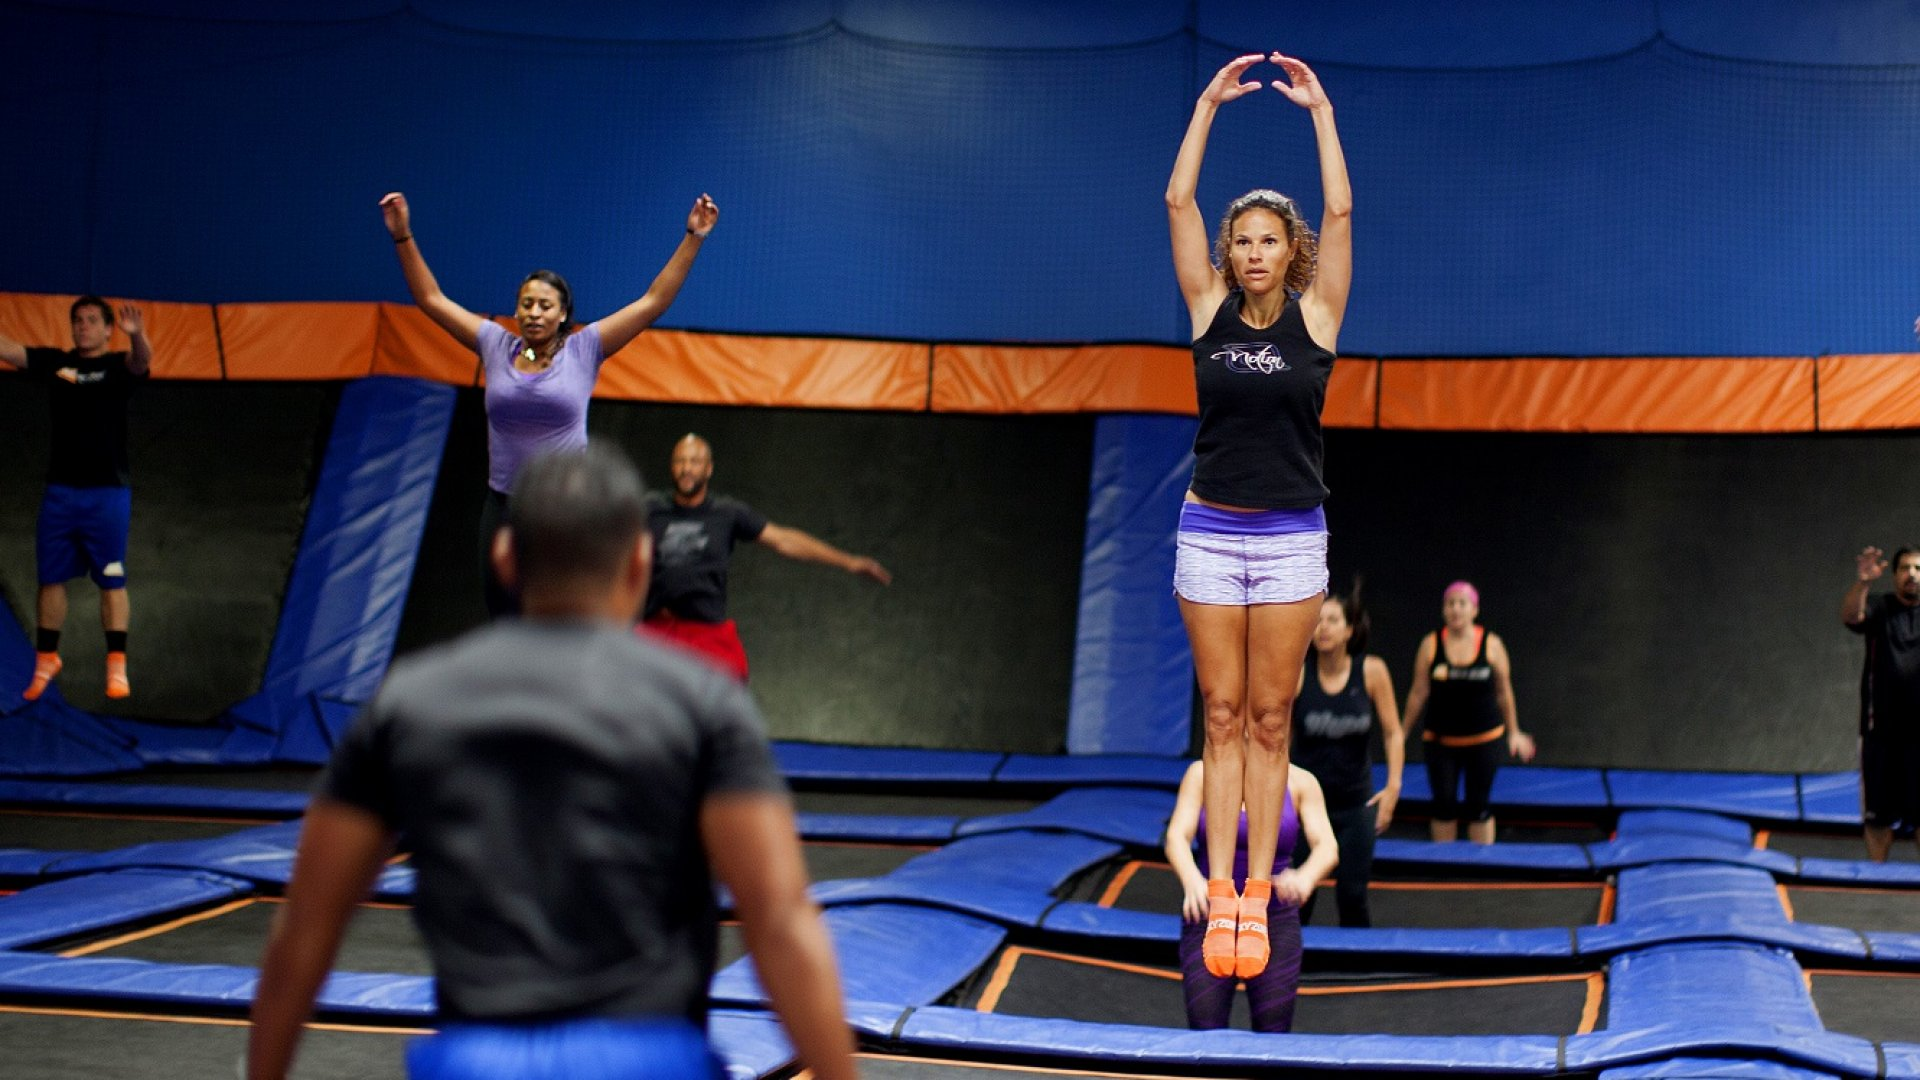 Indoor trampoline park SkyZone, no. 273 on this year's <em>Inc. 5000</em> and one of the ten fastest-growing franchises in America.